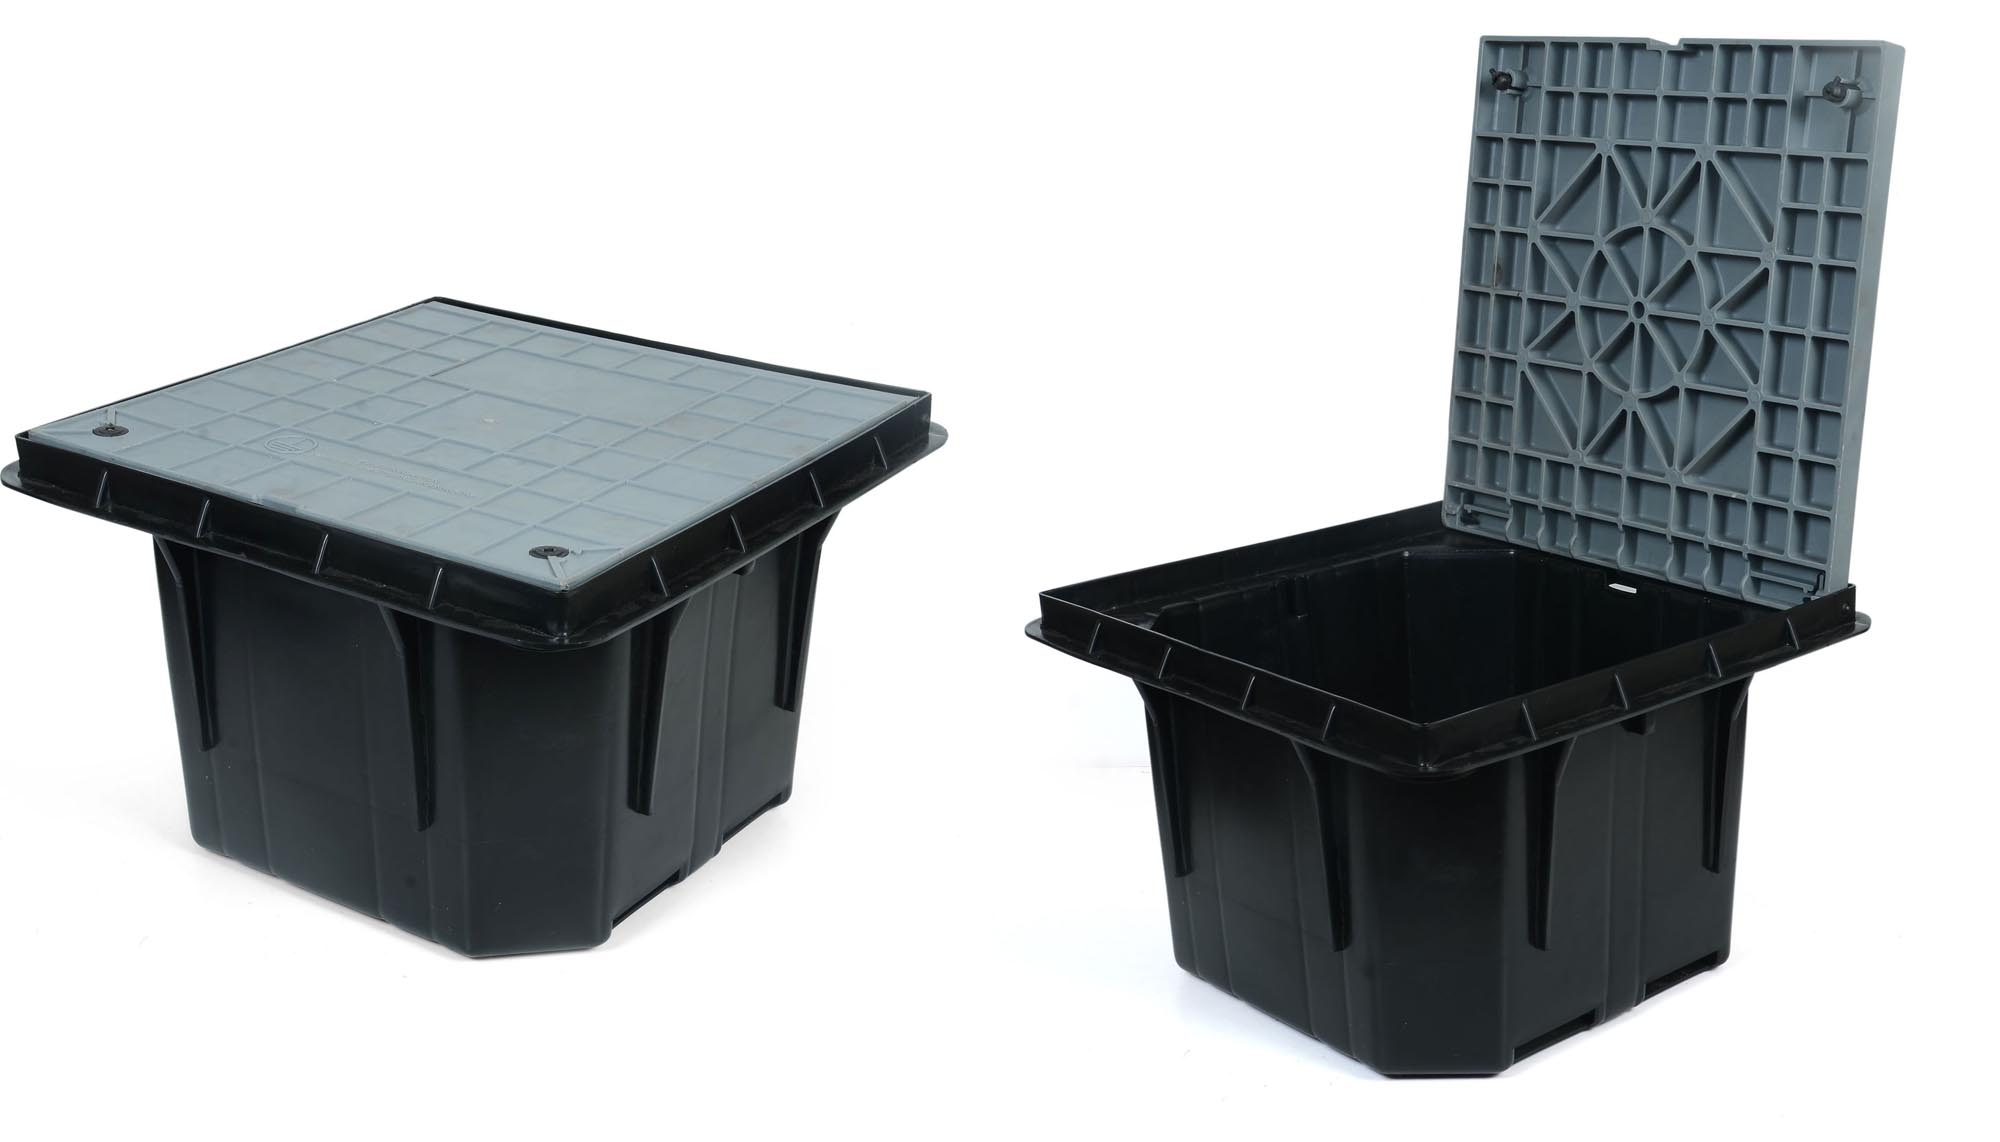 02 SQUARE POLYMER EARTH PIT - BIG